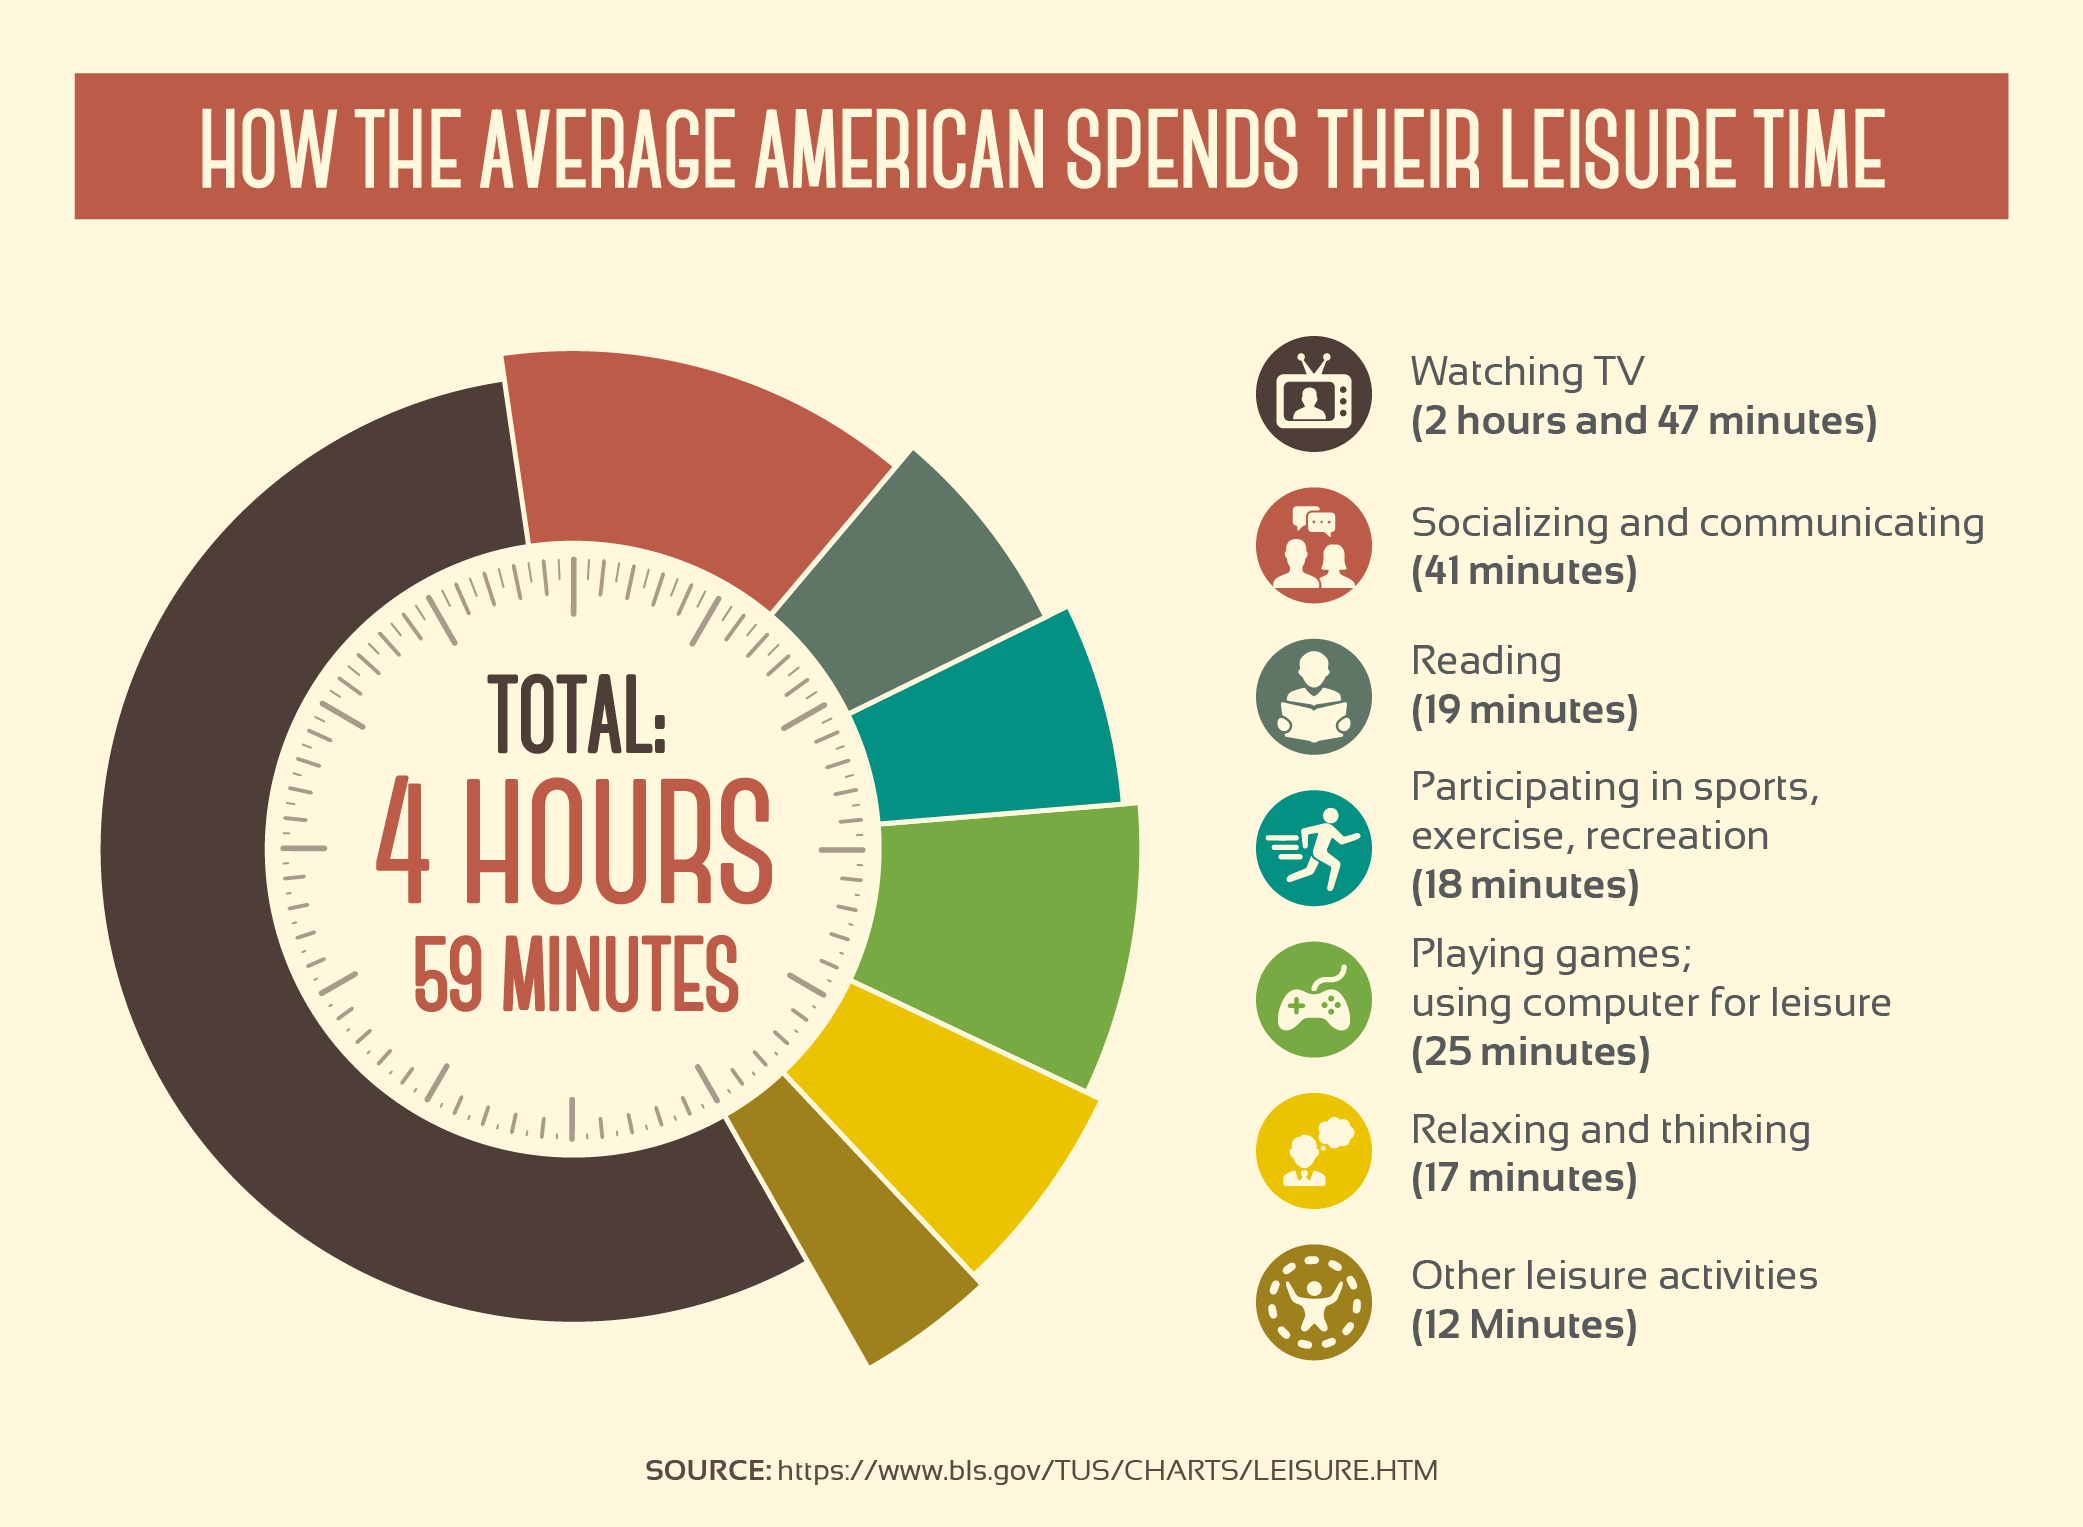 How the Average American Spends Their Leisure Time